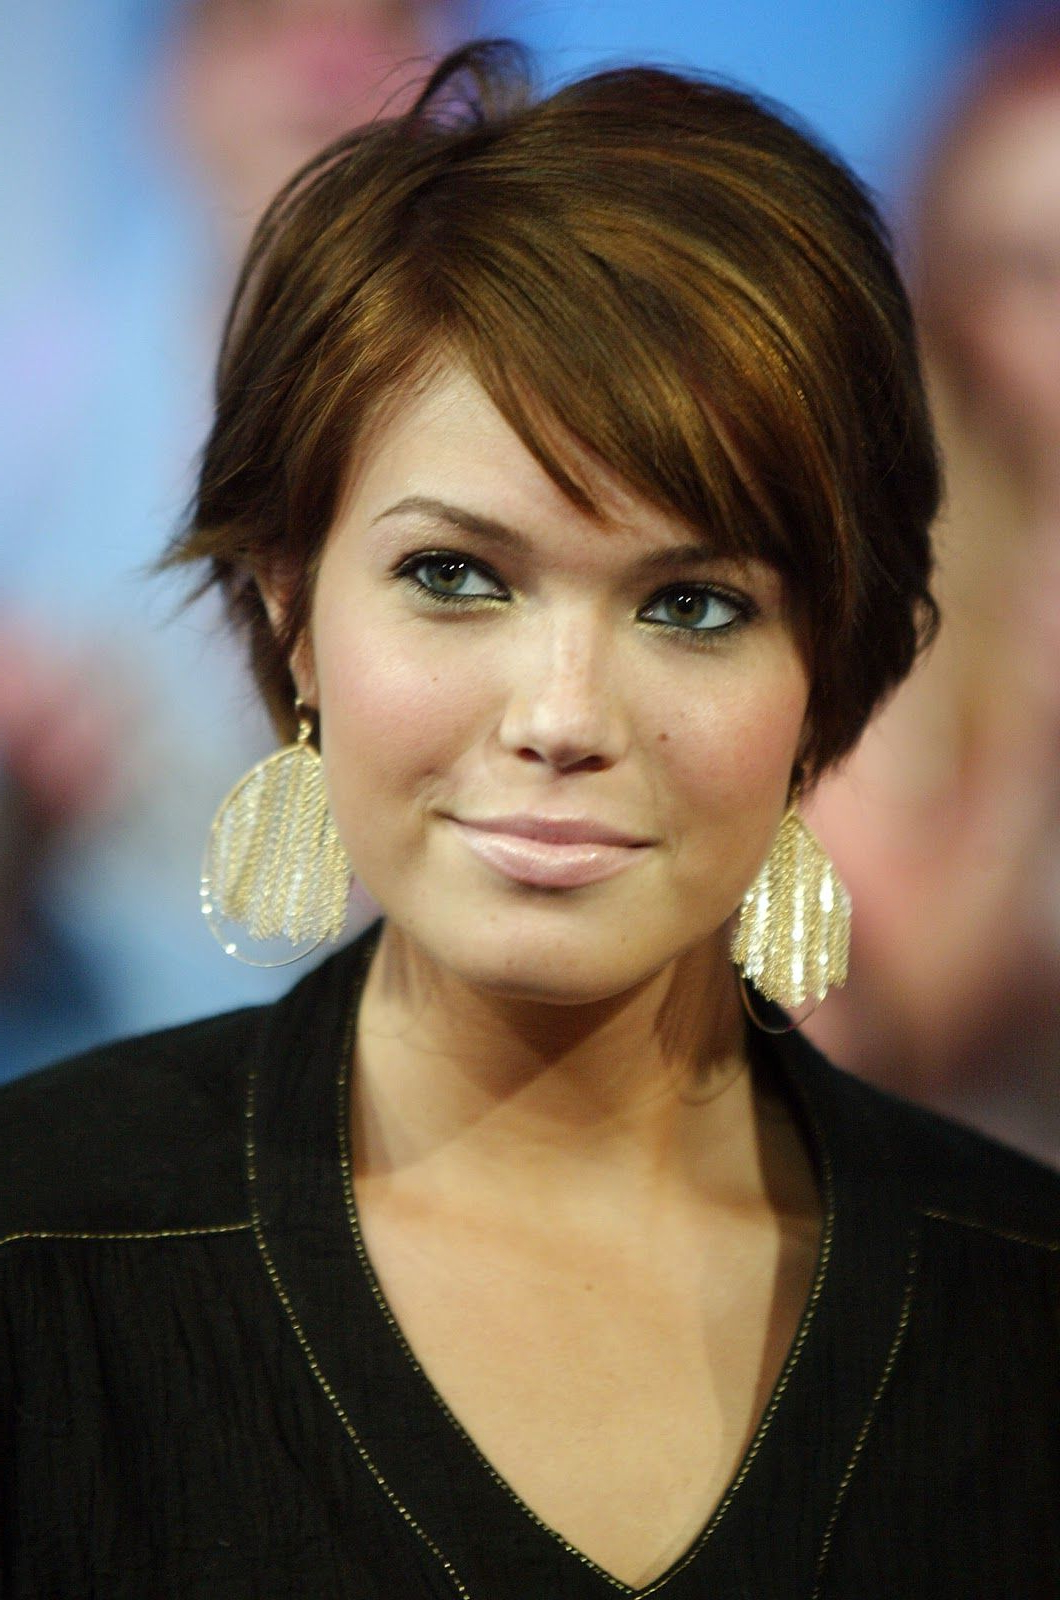 Justifying Shopaholism. : Hair Style: Hair Cut For Round Face regarding Short Hairstyles For Pear Shaped Faces